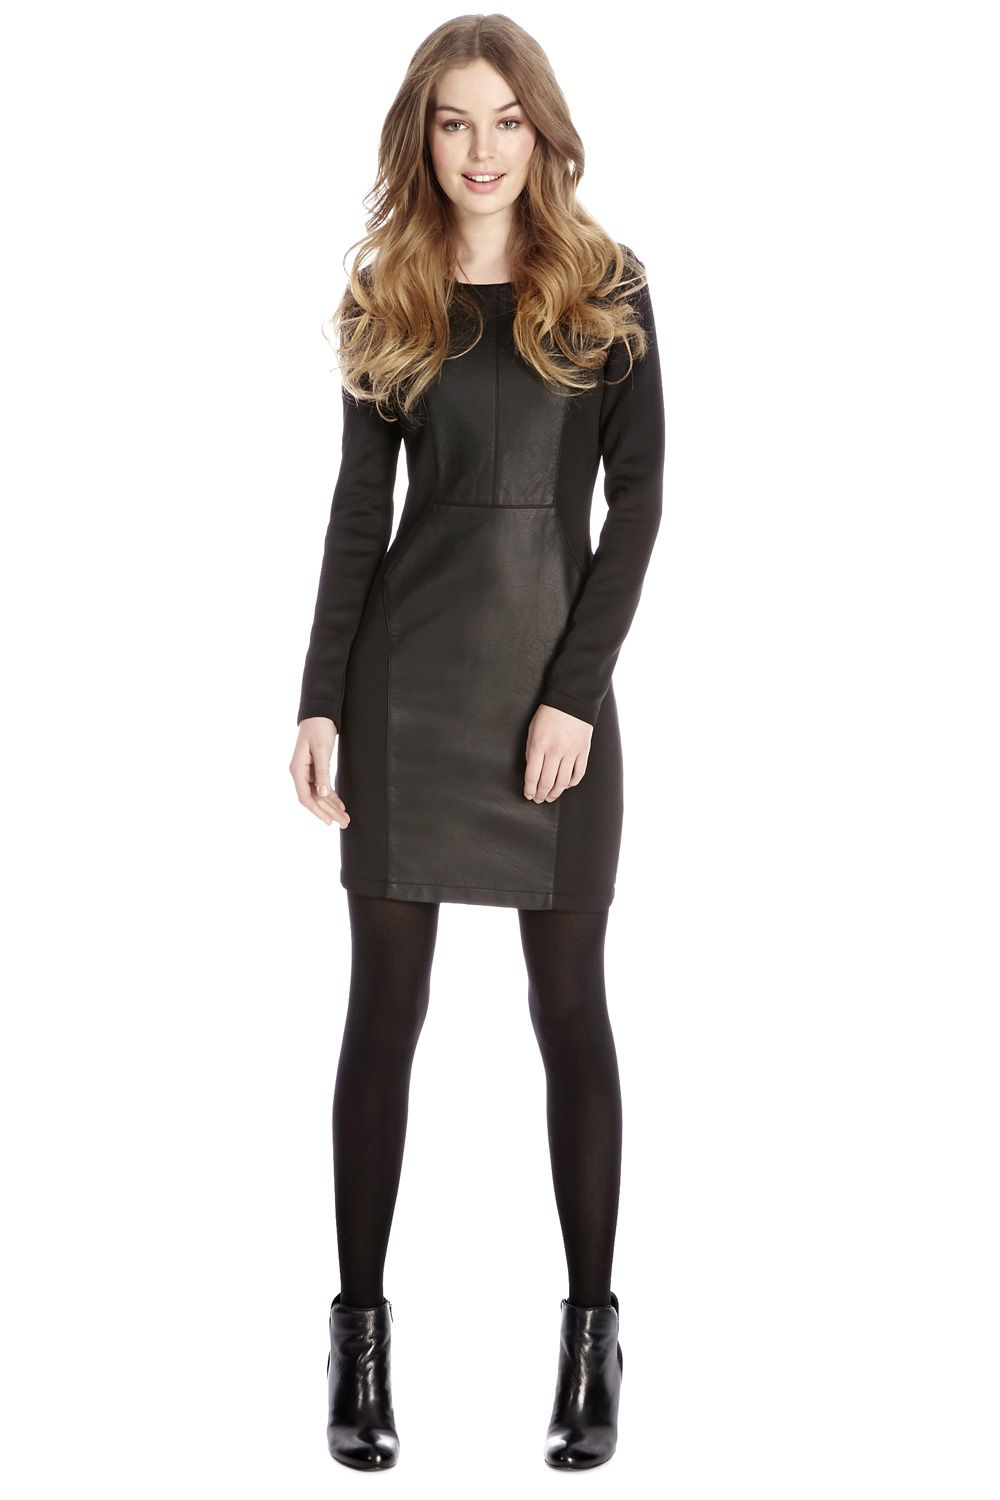 Long sleeve PU and ponte dress